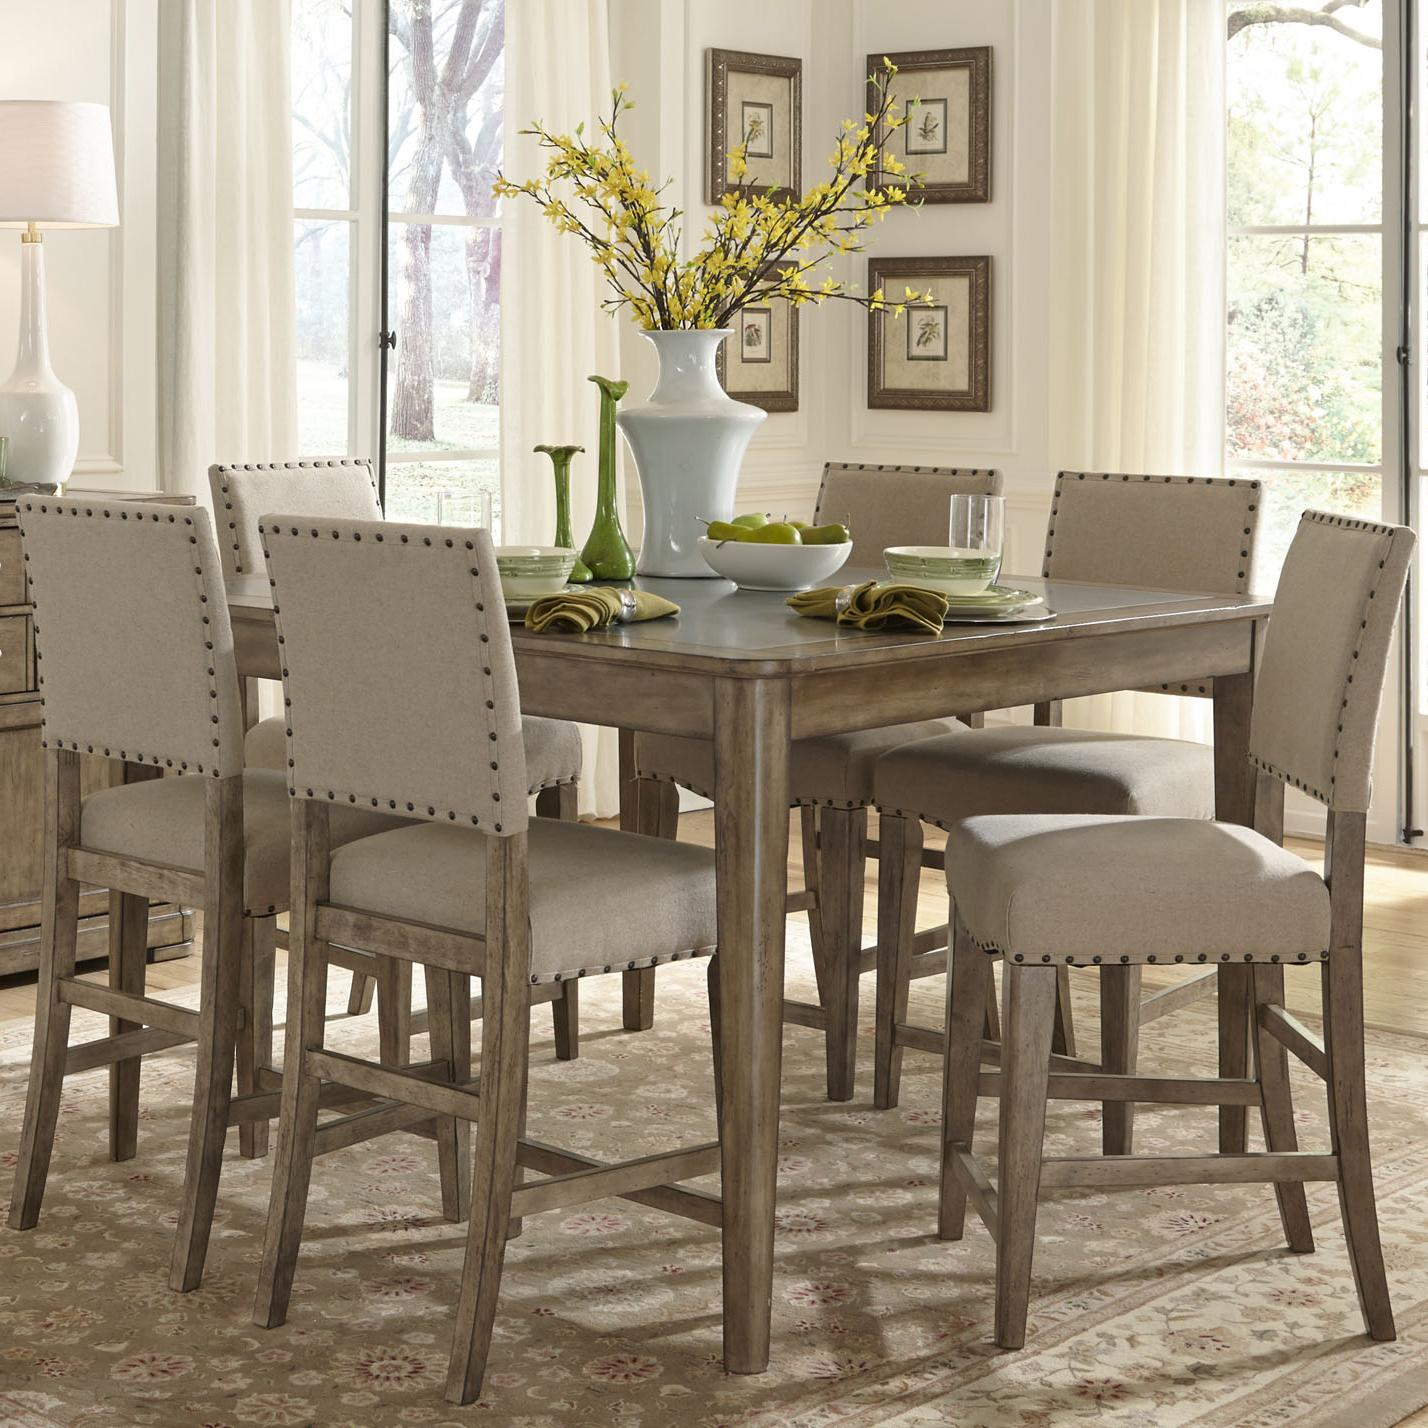 liberty furniture weatherford rustic casual 7 piece gathering height table and chair set. Black Bedroom Furniture Sets. Home Design Ideas